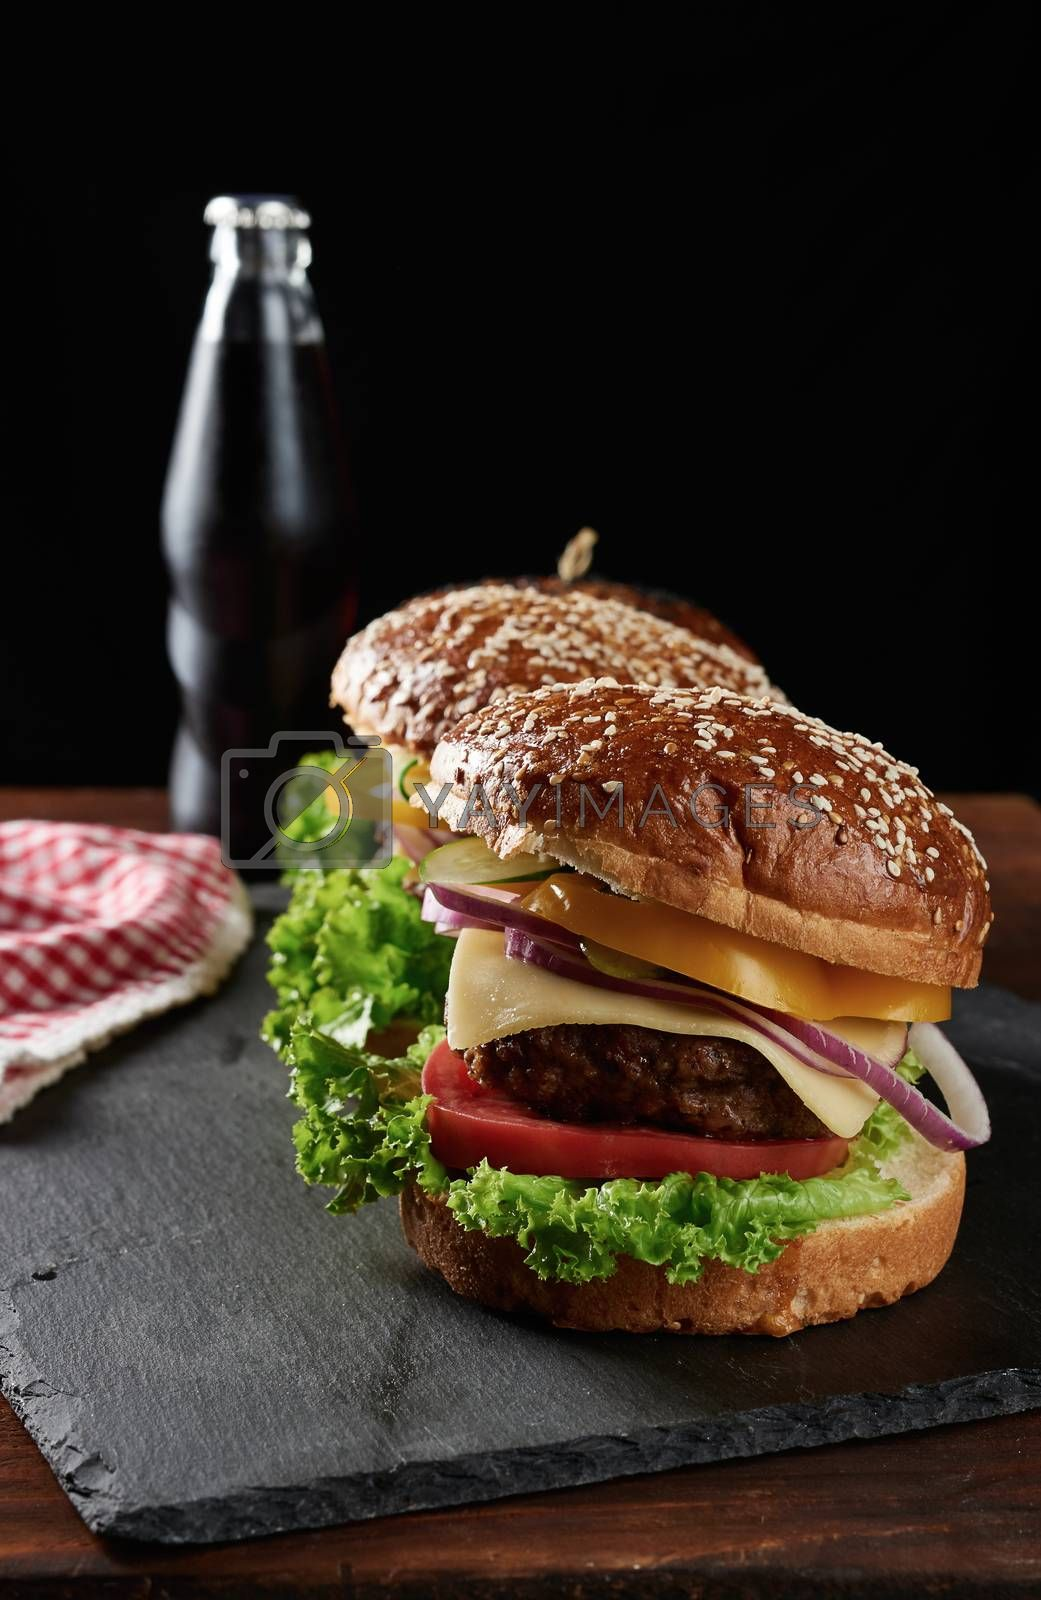 delicious burgers with fried beef cutlet and onions, tomato and crispy white wheat flour bun with sesame seeds. Fast food on a wooden board, behind a bottle with a drink